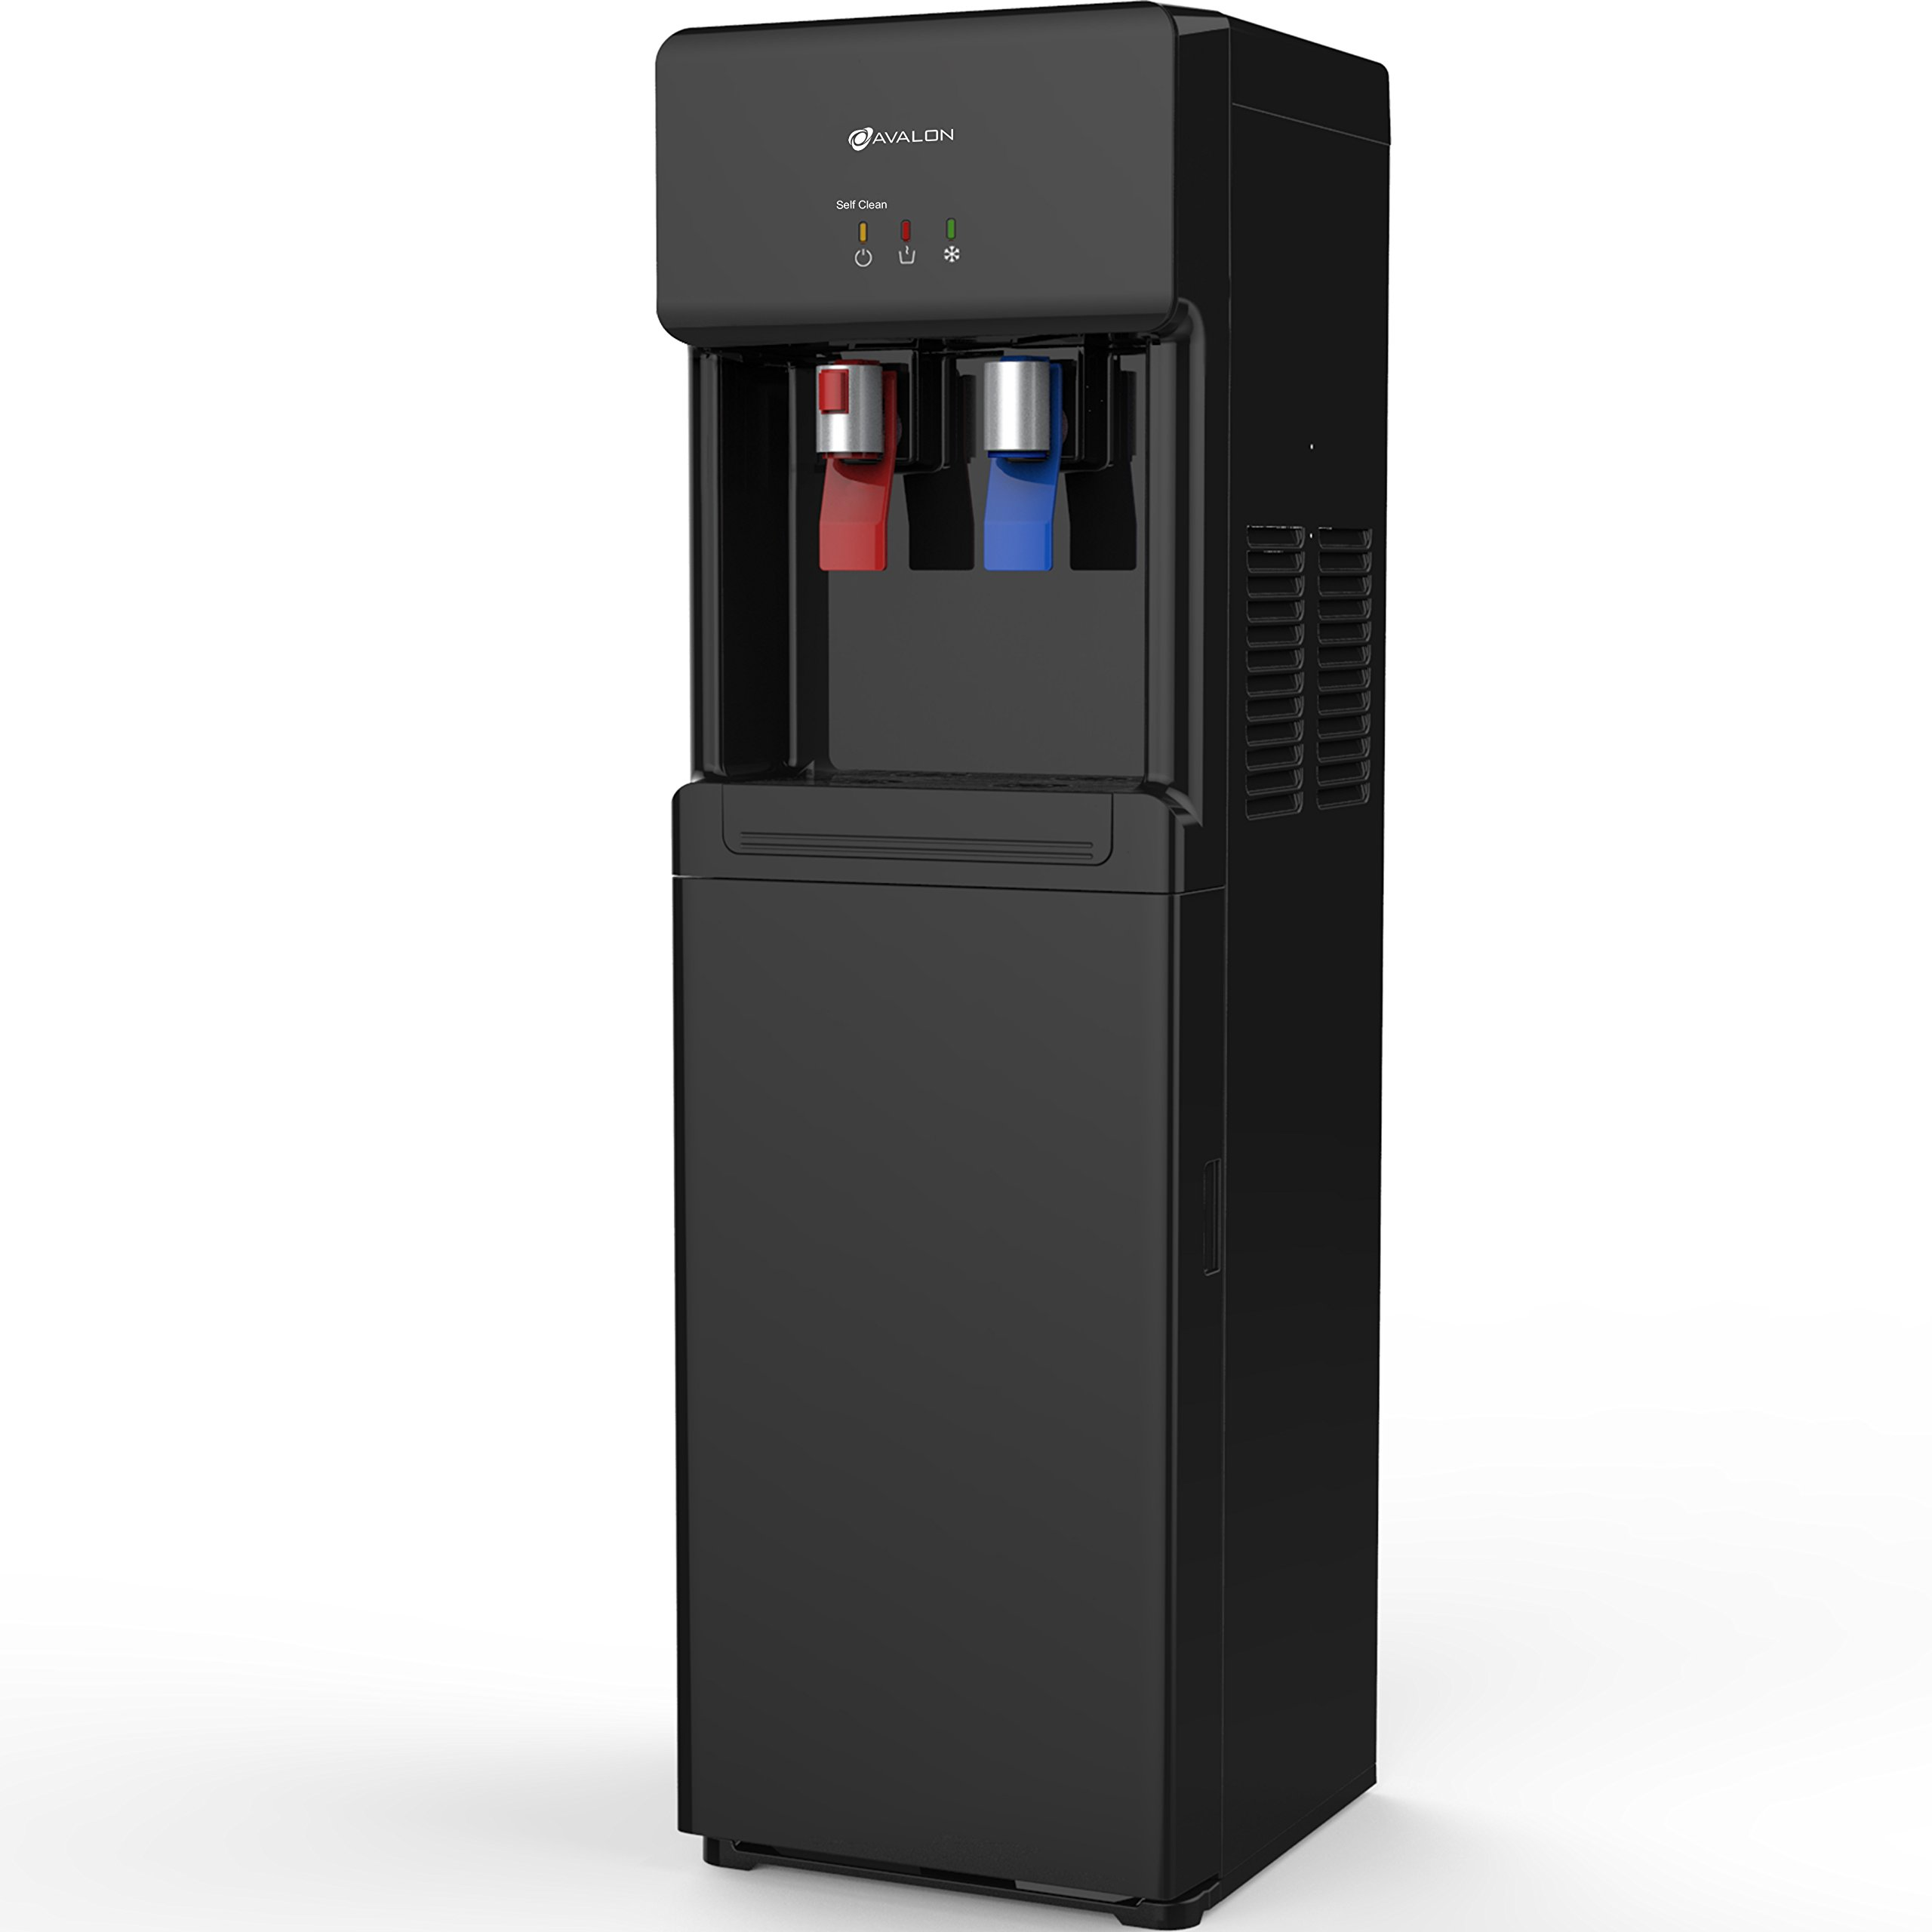 Avalon Self Cleaning Bottom Loading Water Cooler Dispenser -Hot & Cold Water, UL/Energy Star Approved, Black